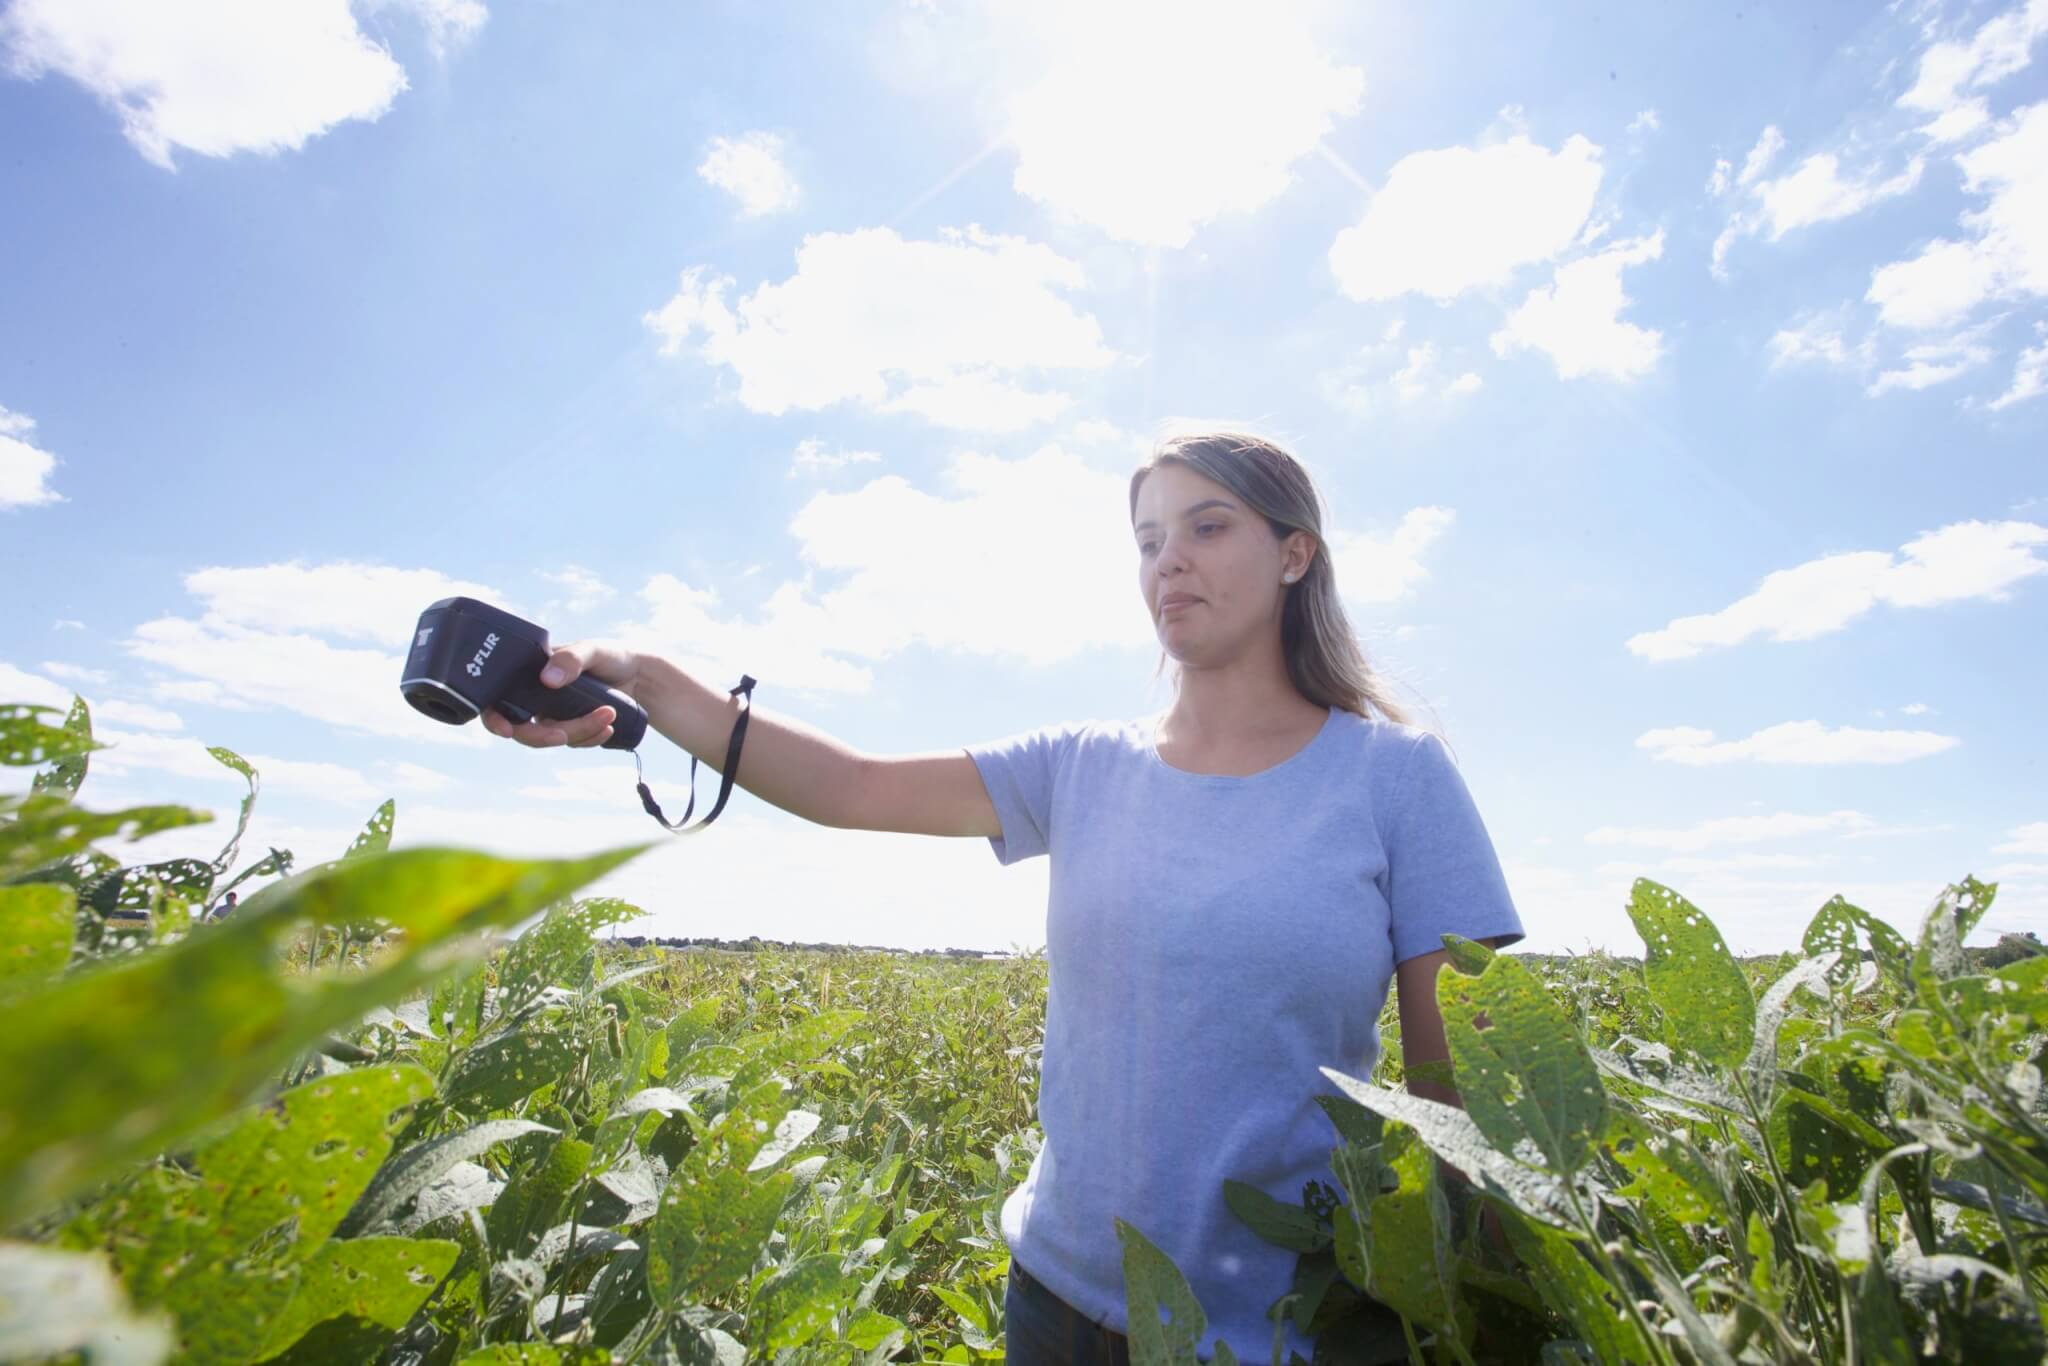 Katy Rainey conducts field work at the Agronomy Center for Research and Education Center (ACRE).